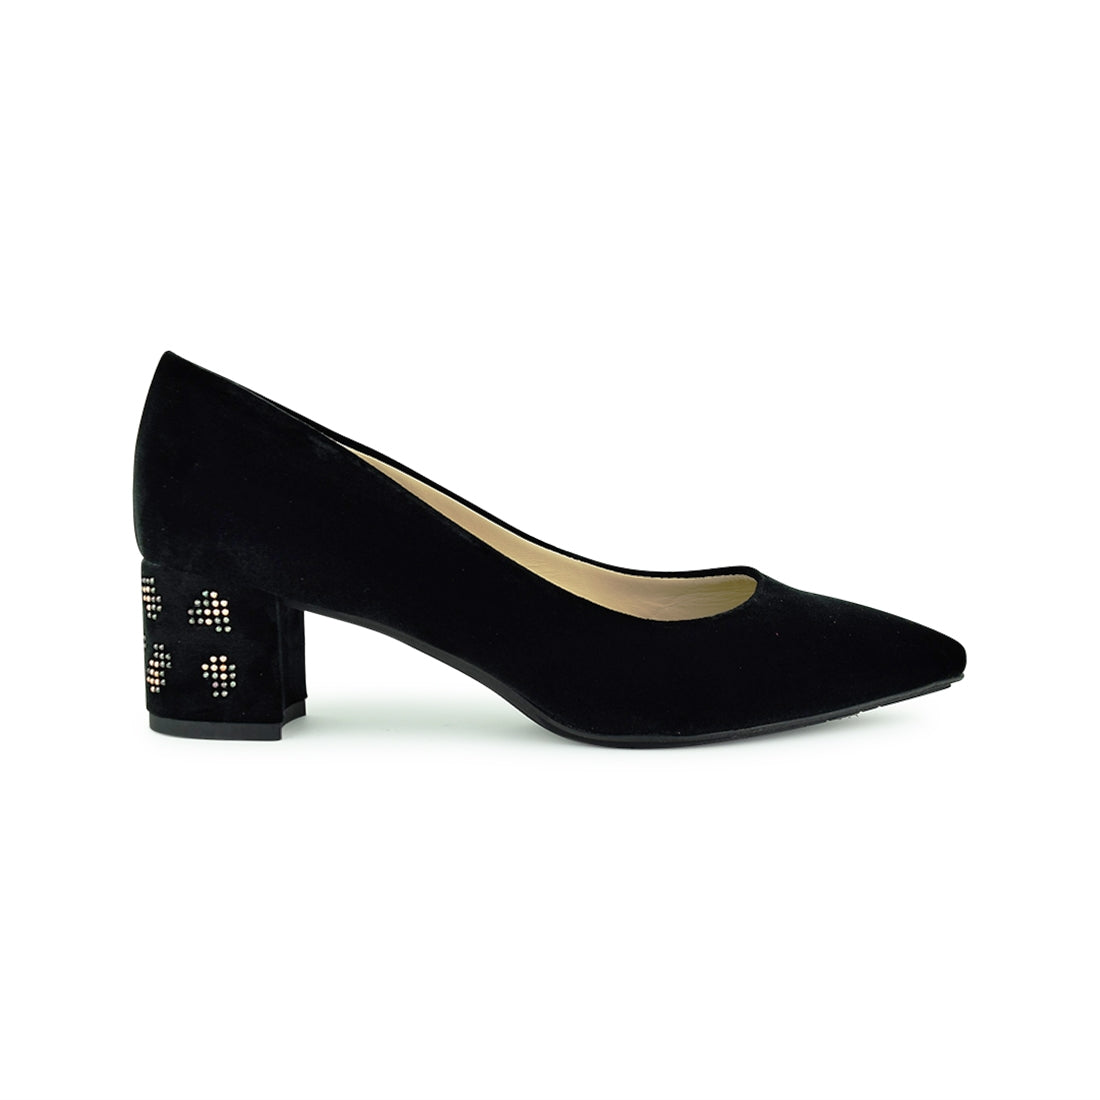 ADAH - Martini Osvaldo Court Shoe Black Velvet